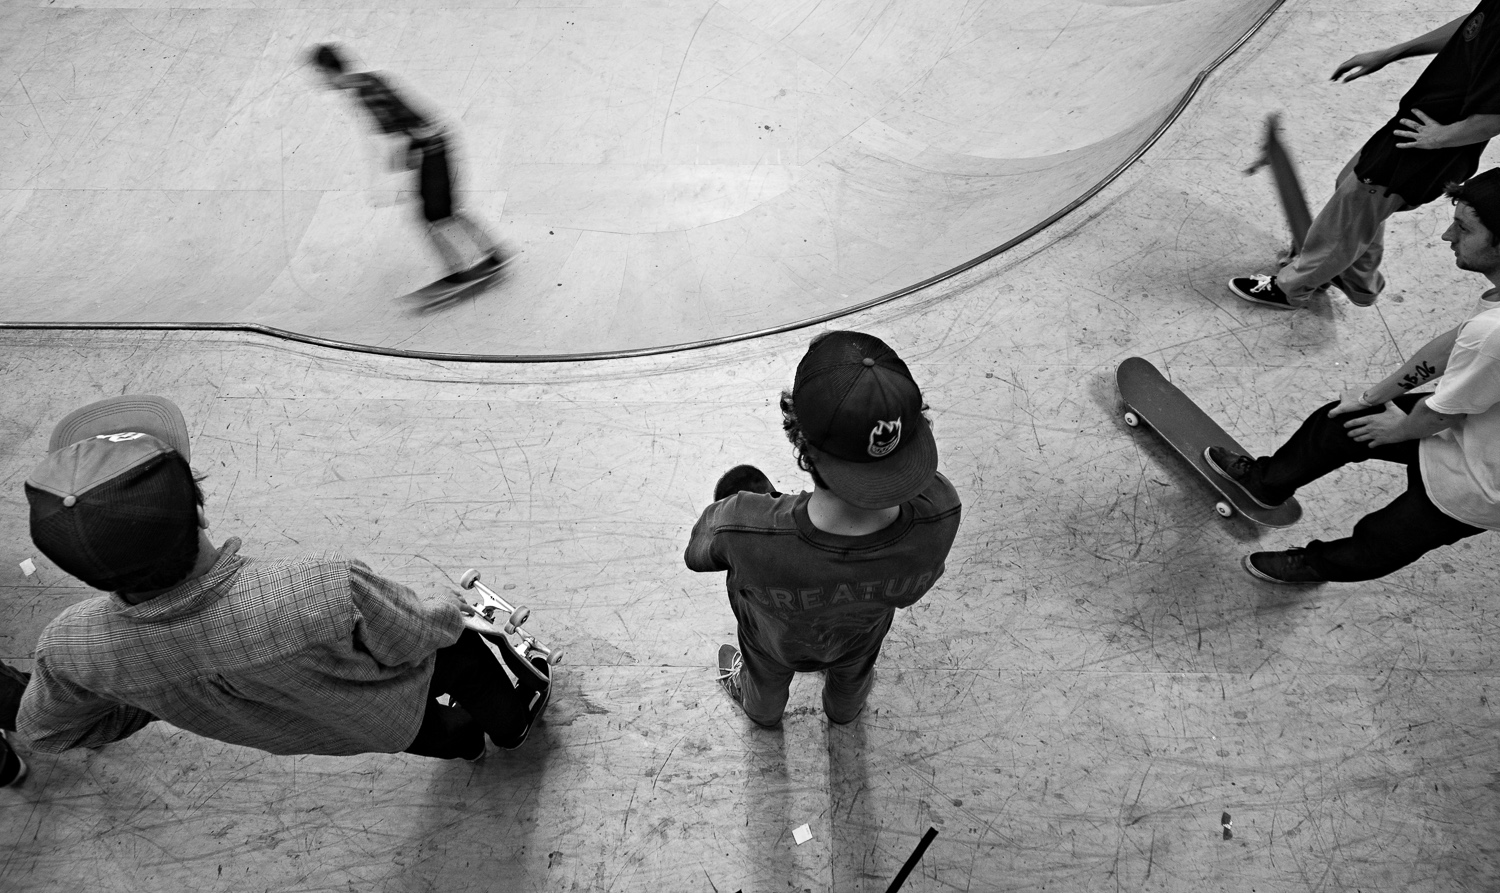 bowl-riding-black-flo-skatepark.jpg